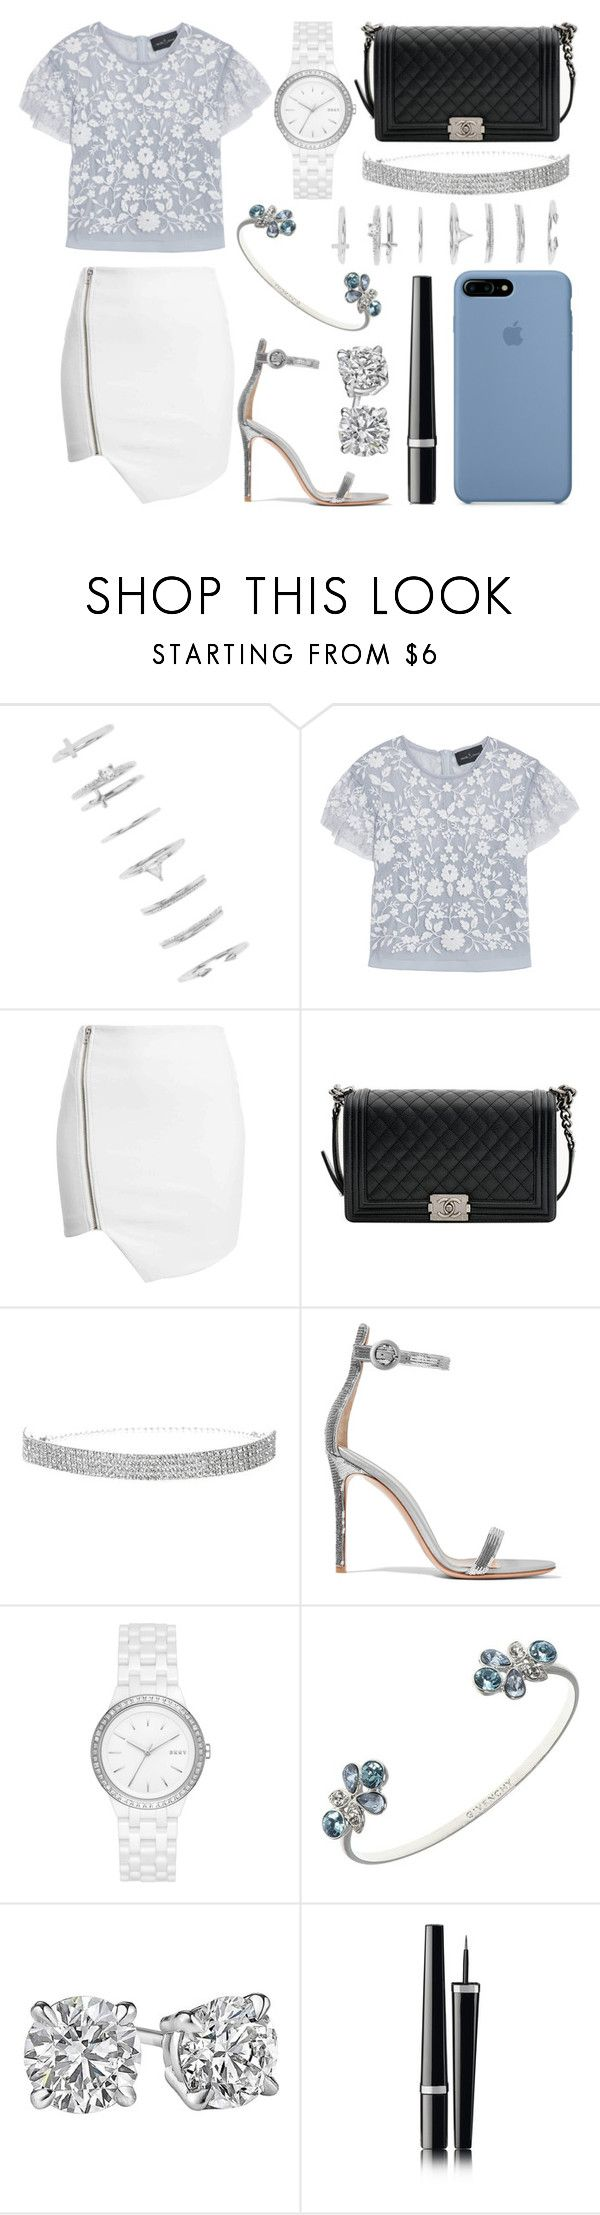 """""""394."""" by plaraa on Polyvore featuring moda, Forever 21, Needle & Thread, Chanel, Gianvito Rossi, DKNY y Givenchy"""